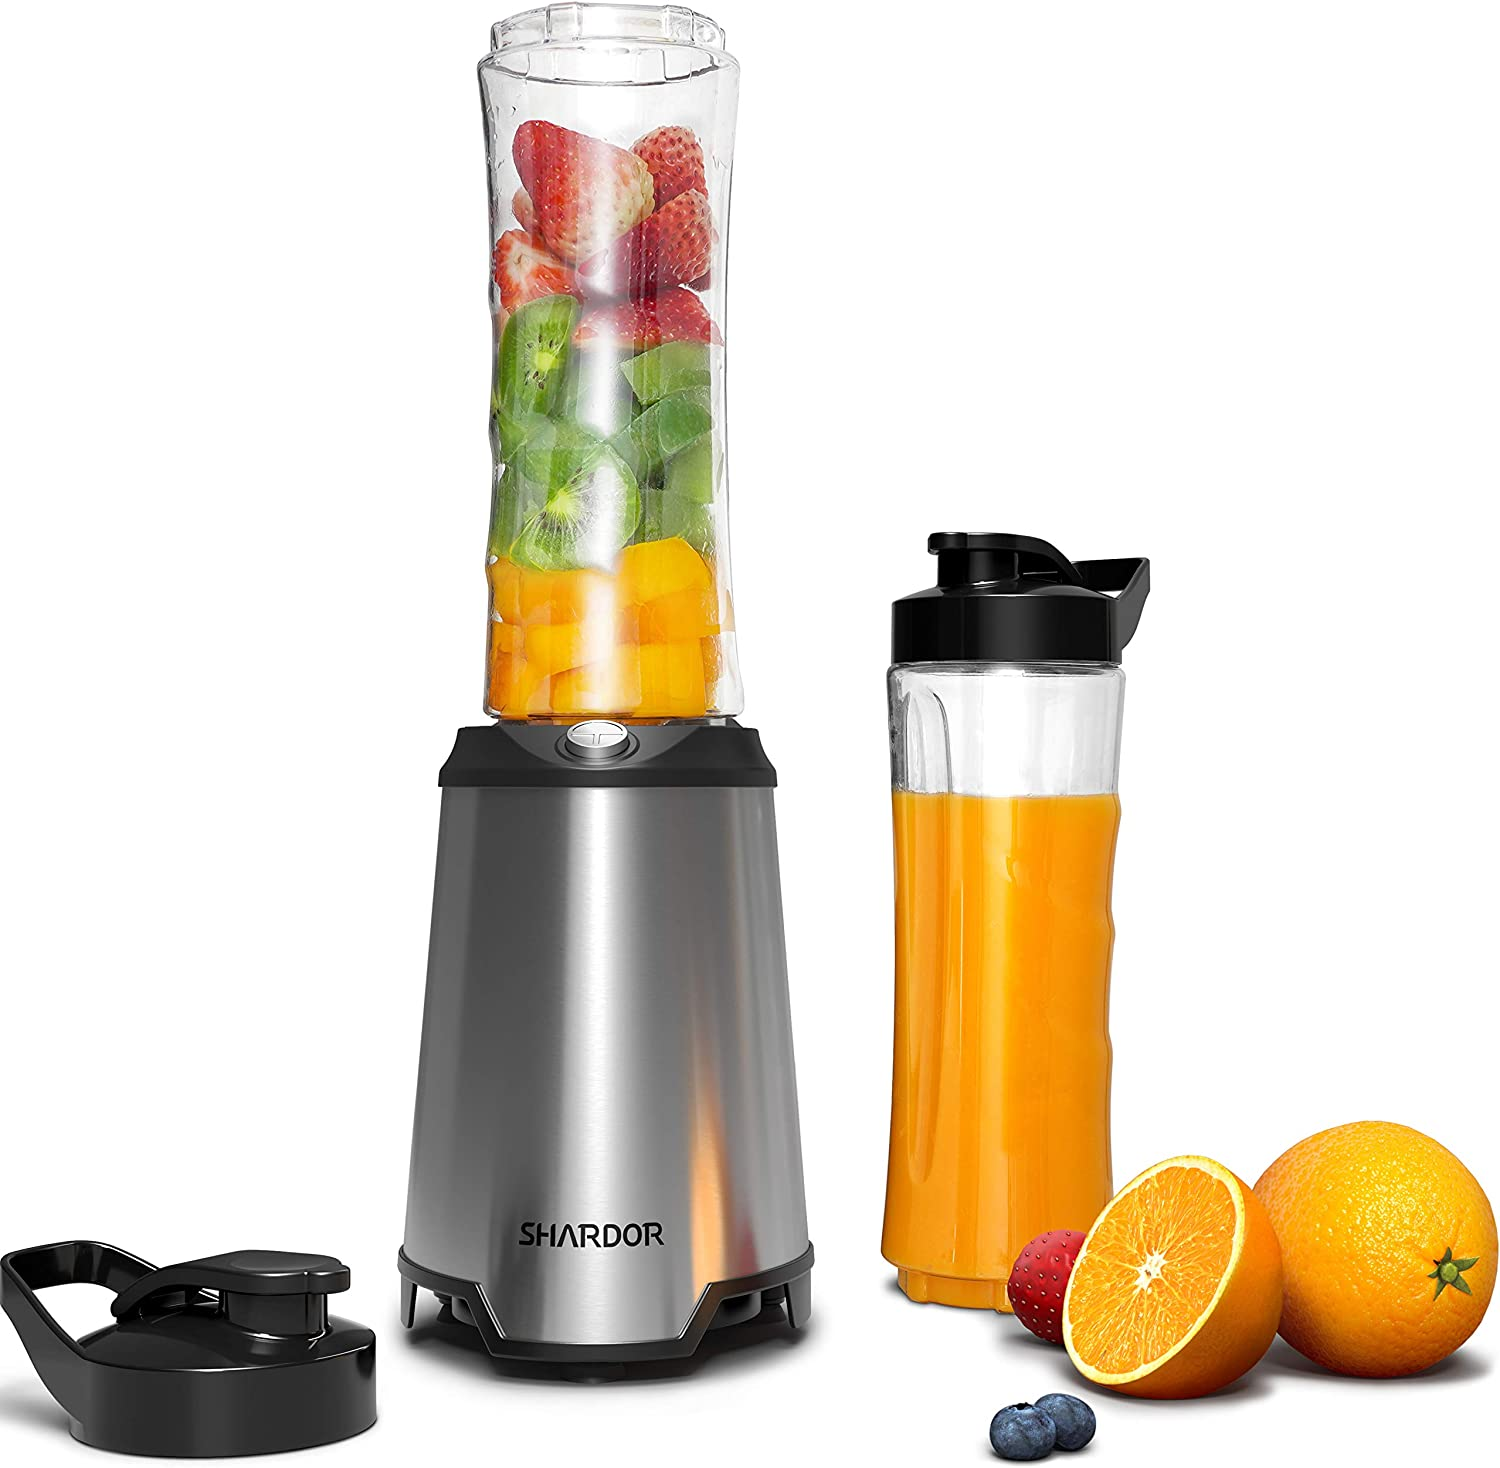 SHARDOR Personal Blender, Smoothie Blender with 2 BPA-Free Portable 20oz Travel Cups, Single Serve Blender for Shakes and Smoothies, 300W, Silver